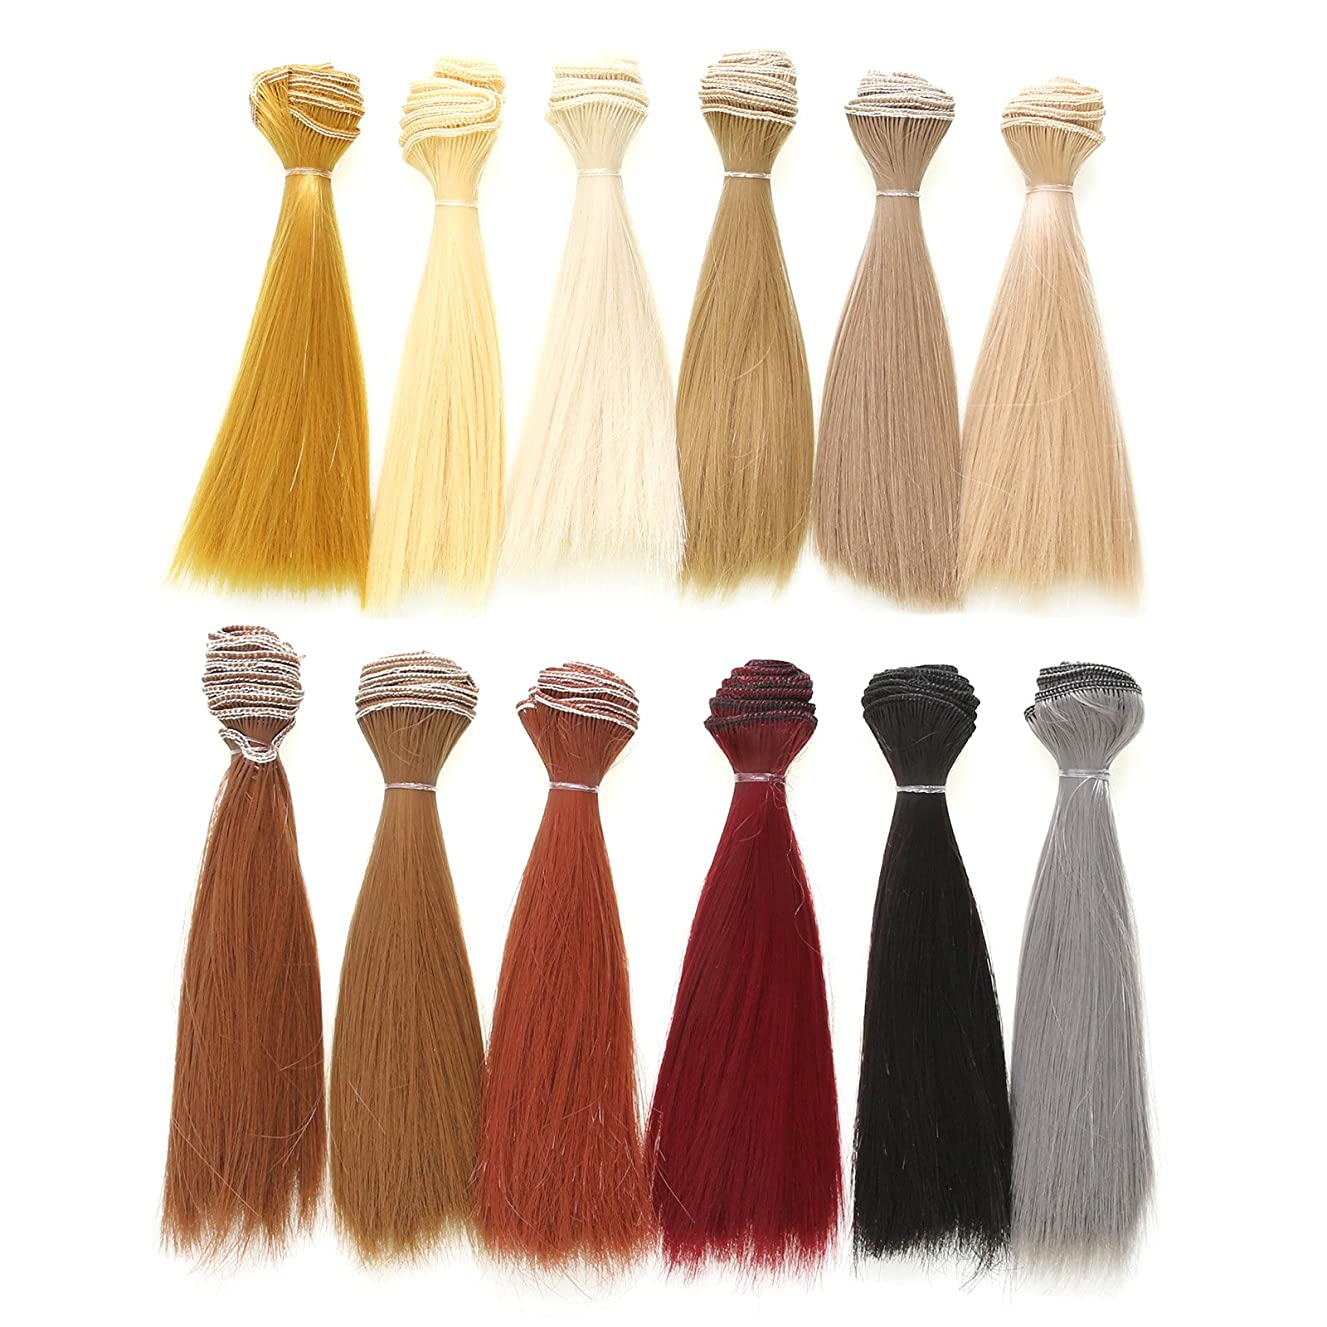 Vranky 12 Color Doll DIY Straight Hair 15cm 100cm for DIY BJD/SD/Bly The/American Girl Doll- for Arts and Crafts, Doll Making, and More